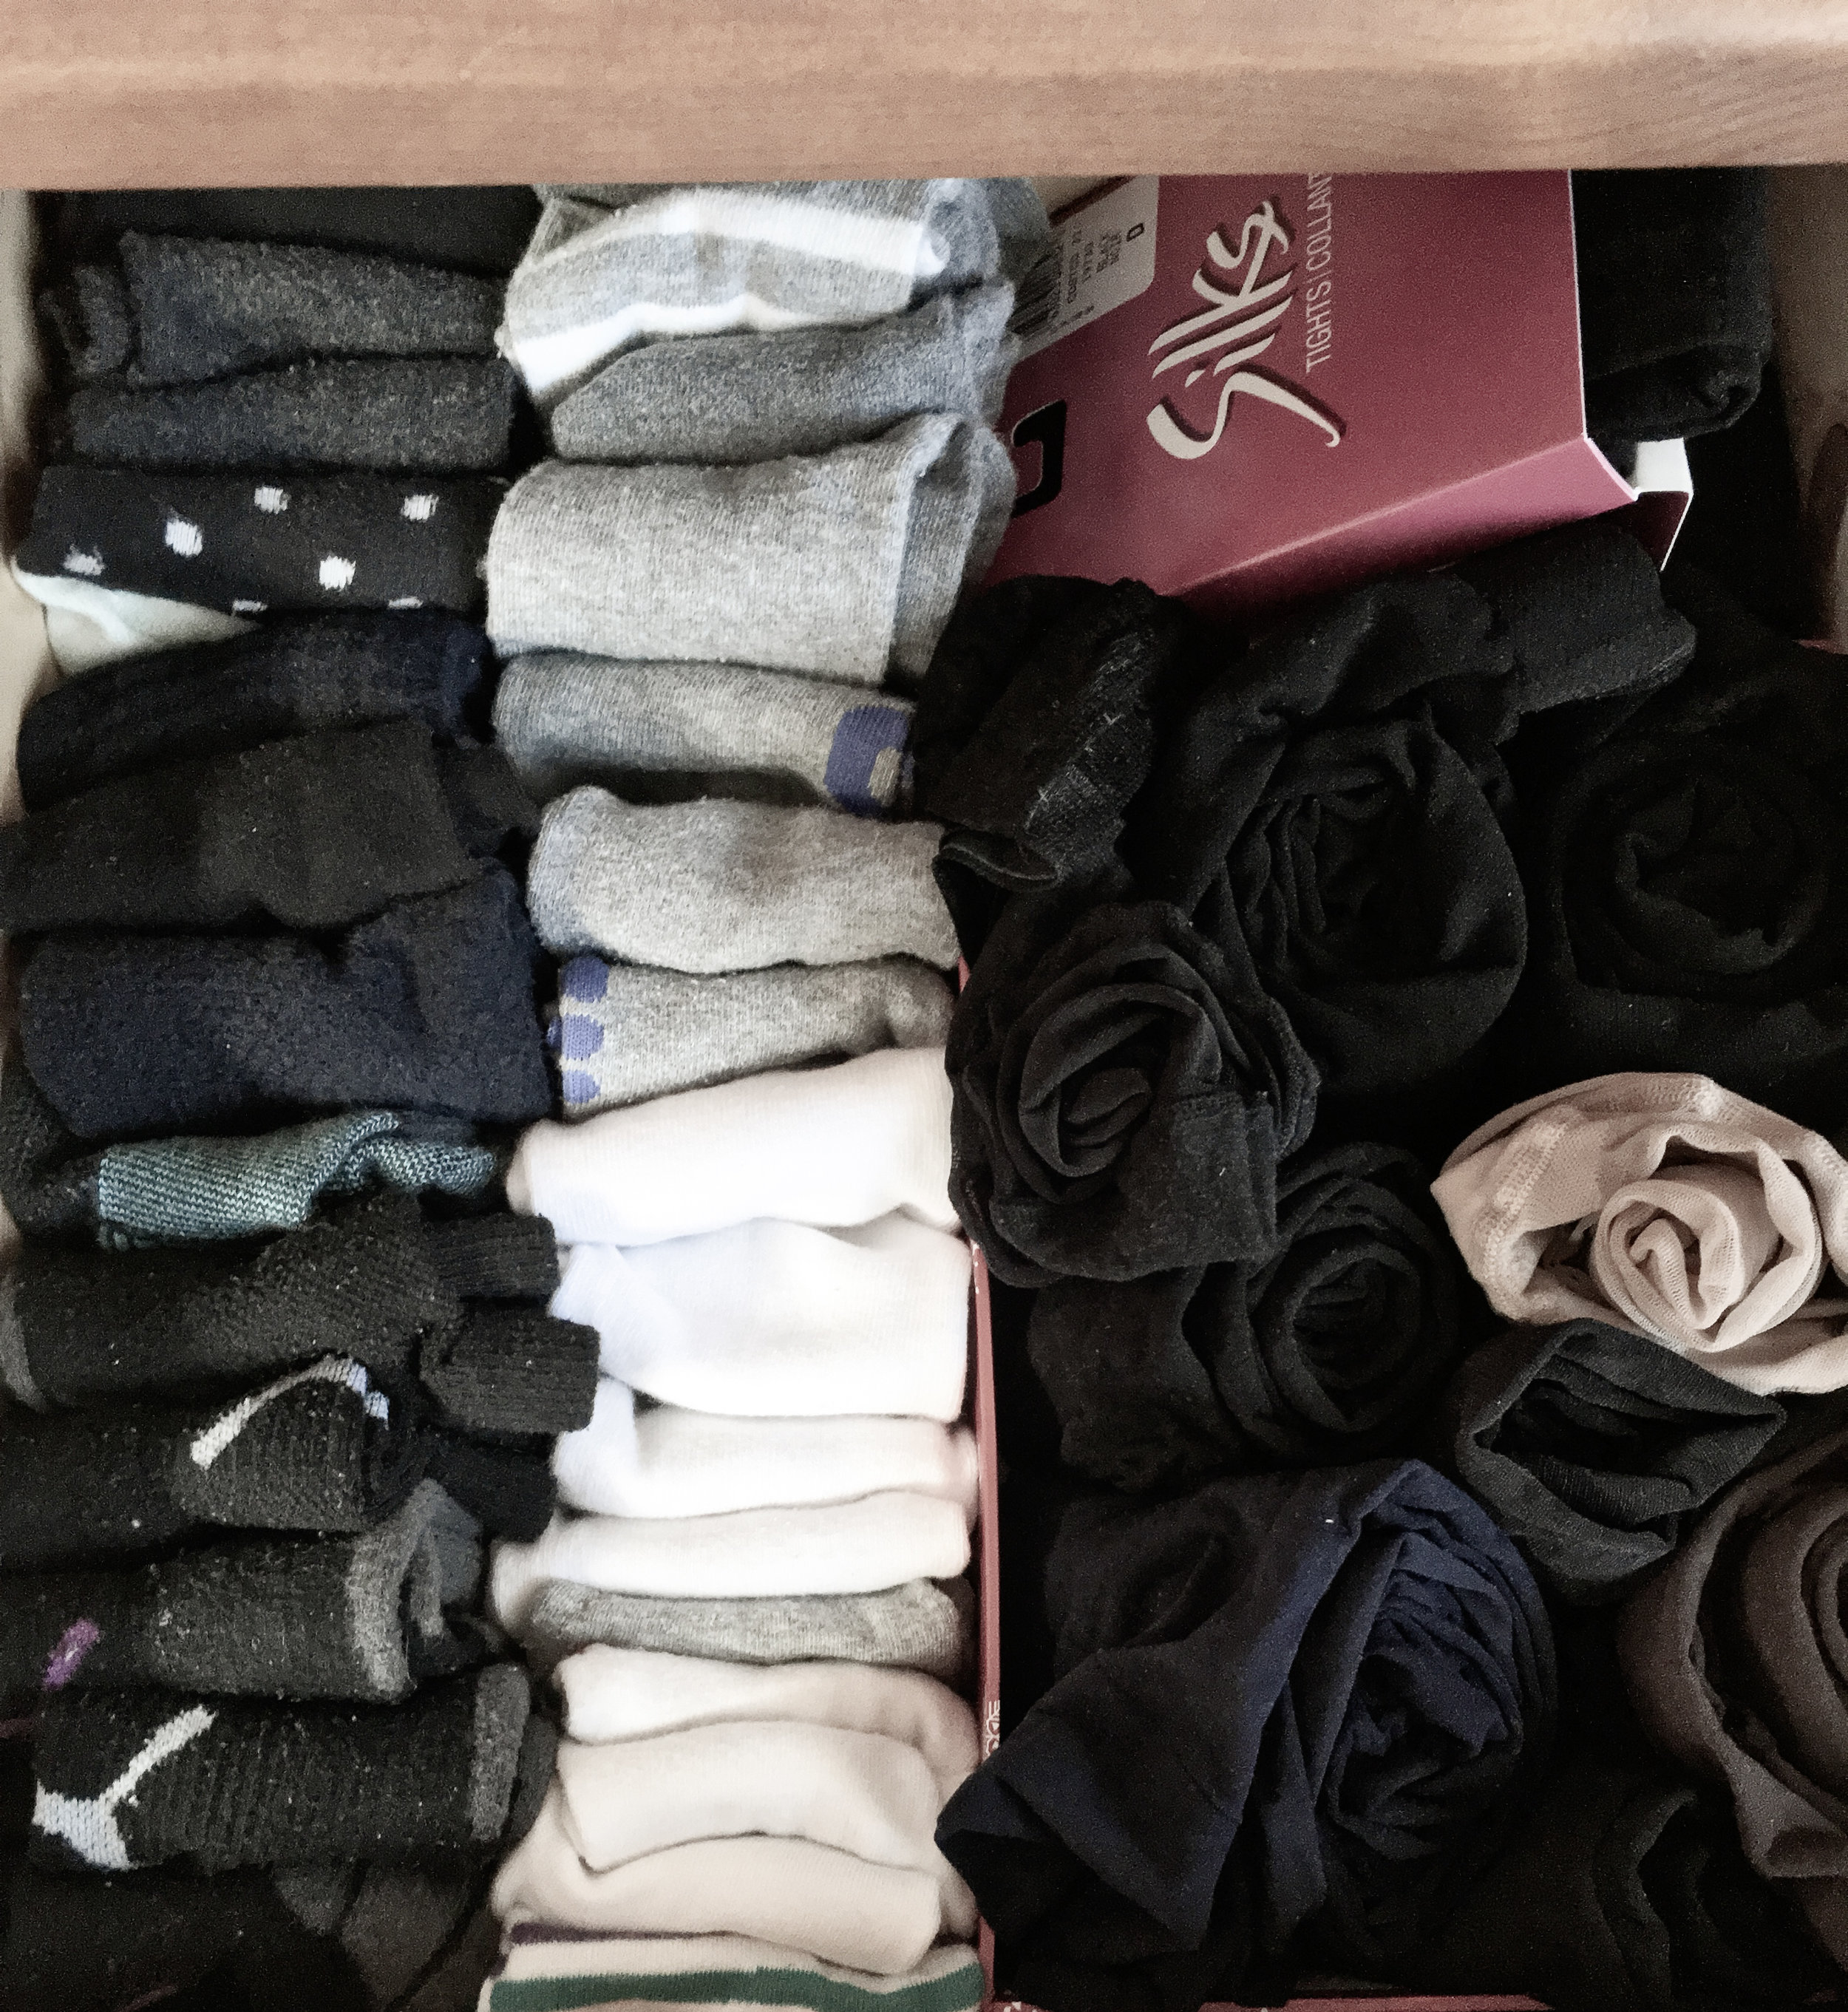 I folded my underwear and socks - the right side of fifty